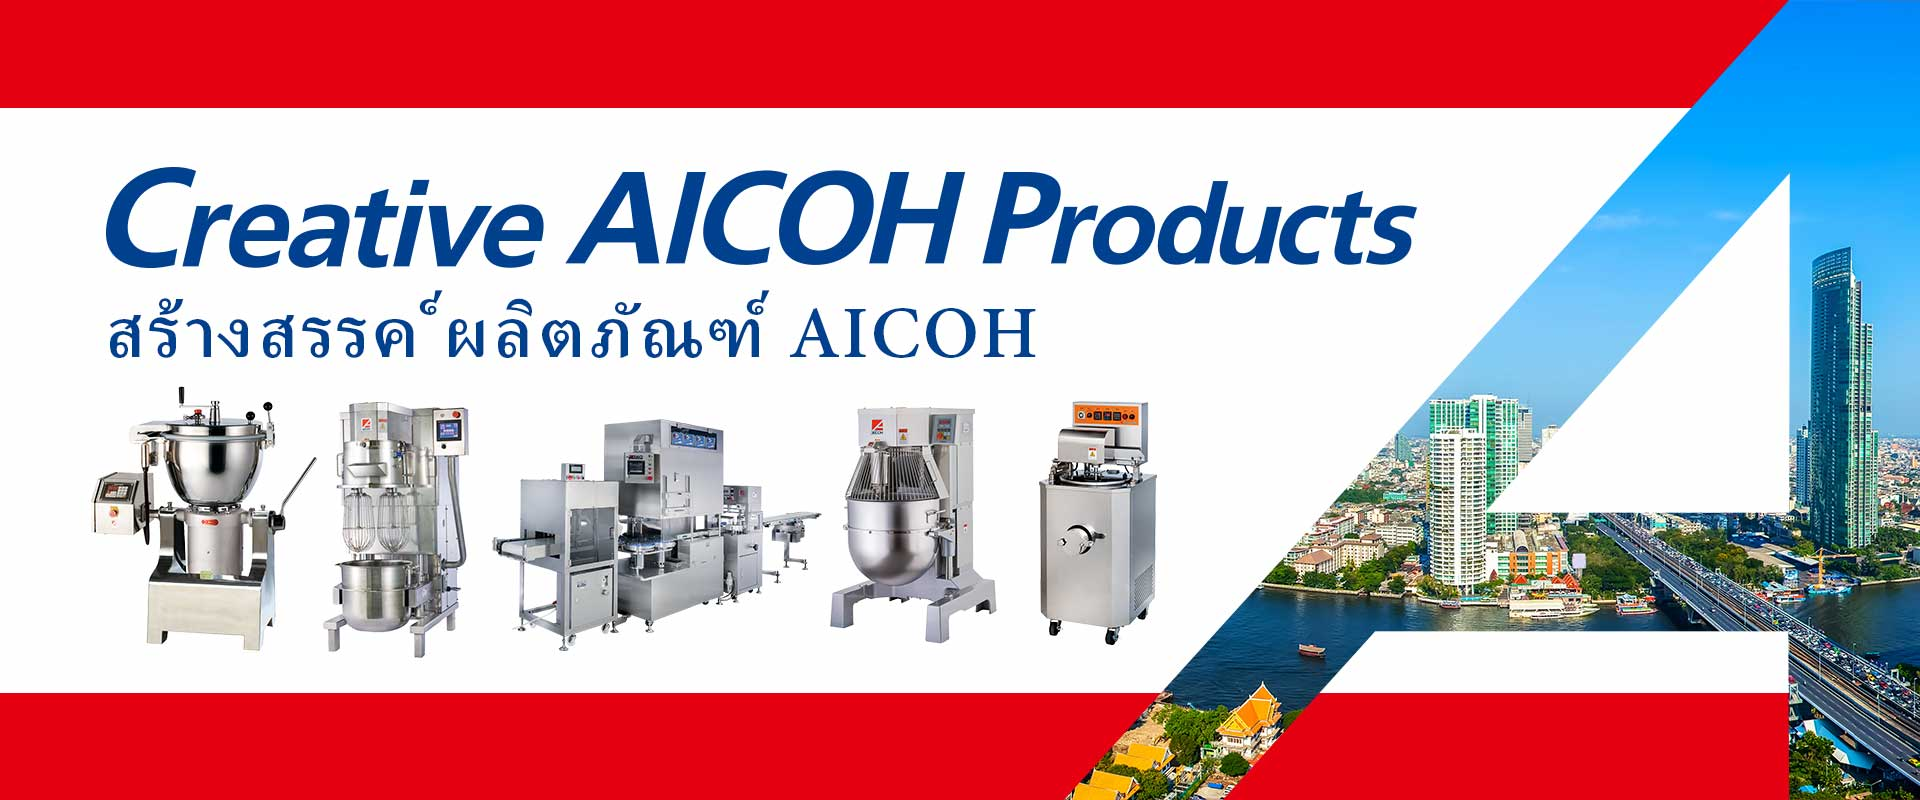 Creative AICOH Products